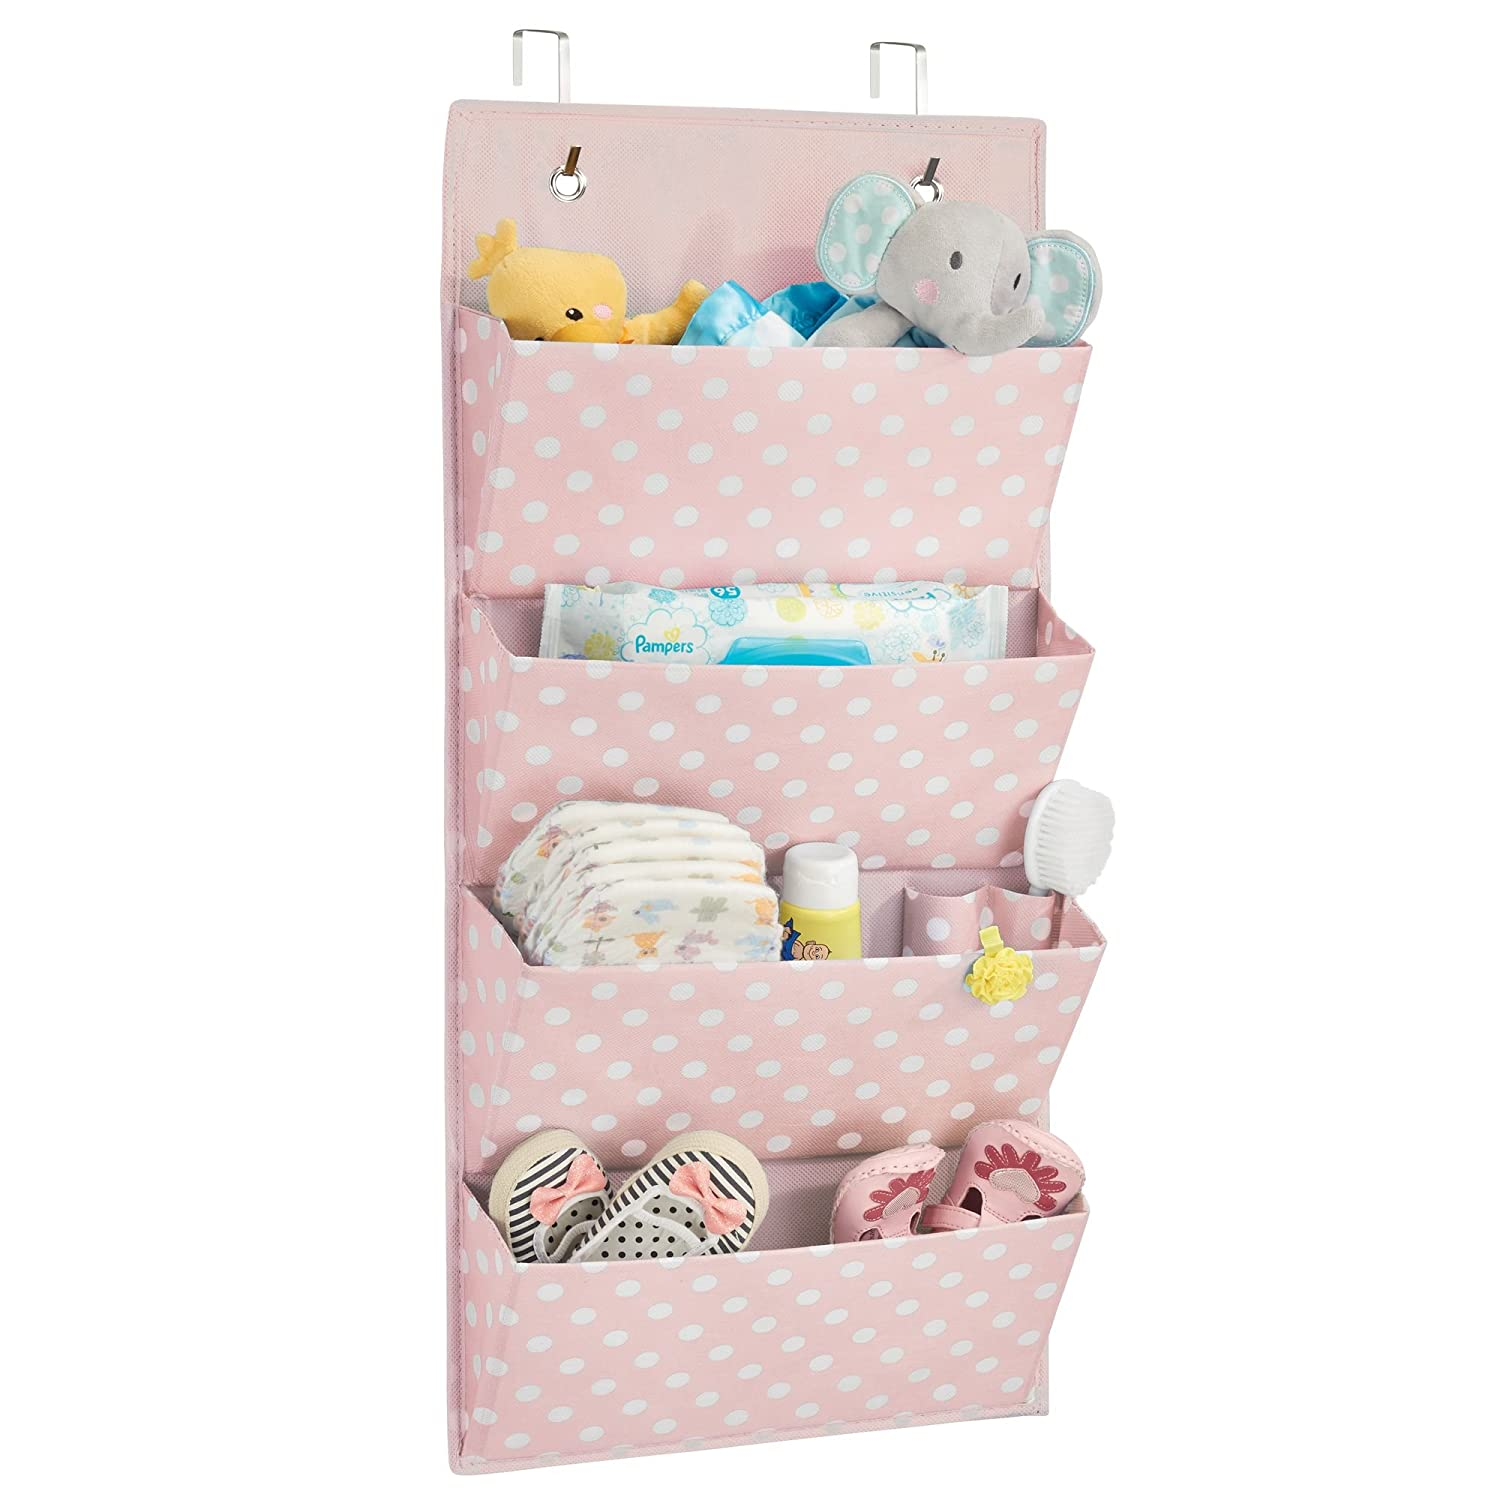 mDesign Soft Fabric Wall Mount/Over Door Vertical Hanging Storage Organizer Center - 4 Large Pockets for Baby Child/Kids Bedroom, Nursery, Playroom, Closet - Polka Dot Print, 2 Pack - Pink/White MetroDecor 02387MDCO